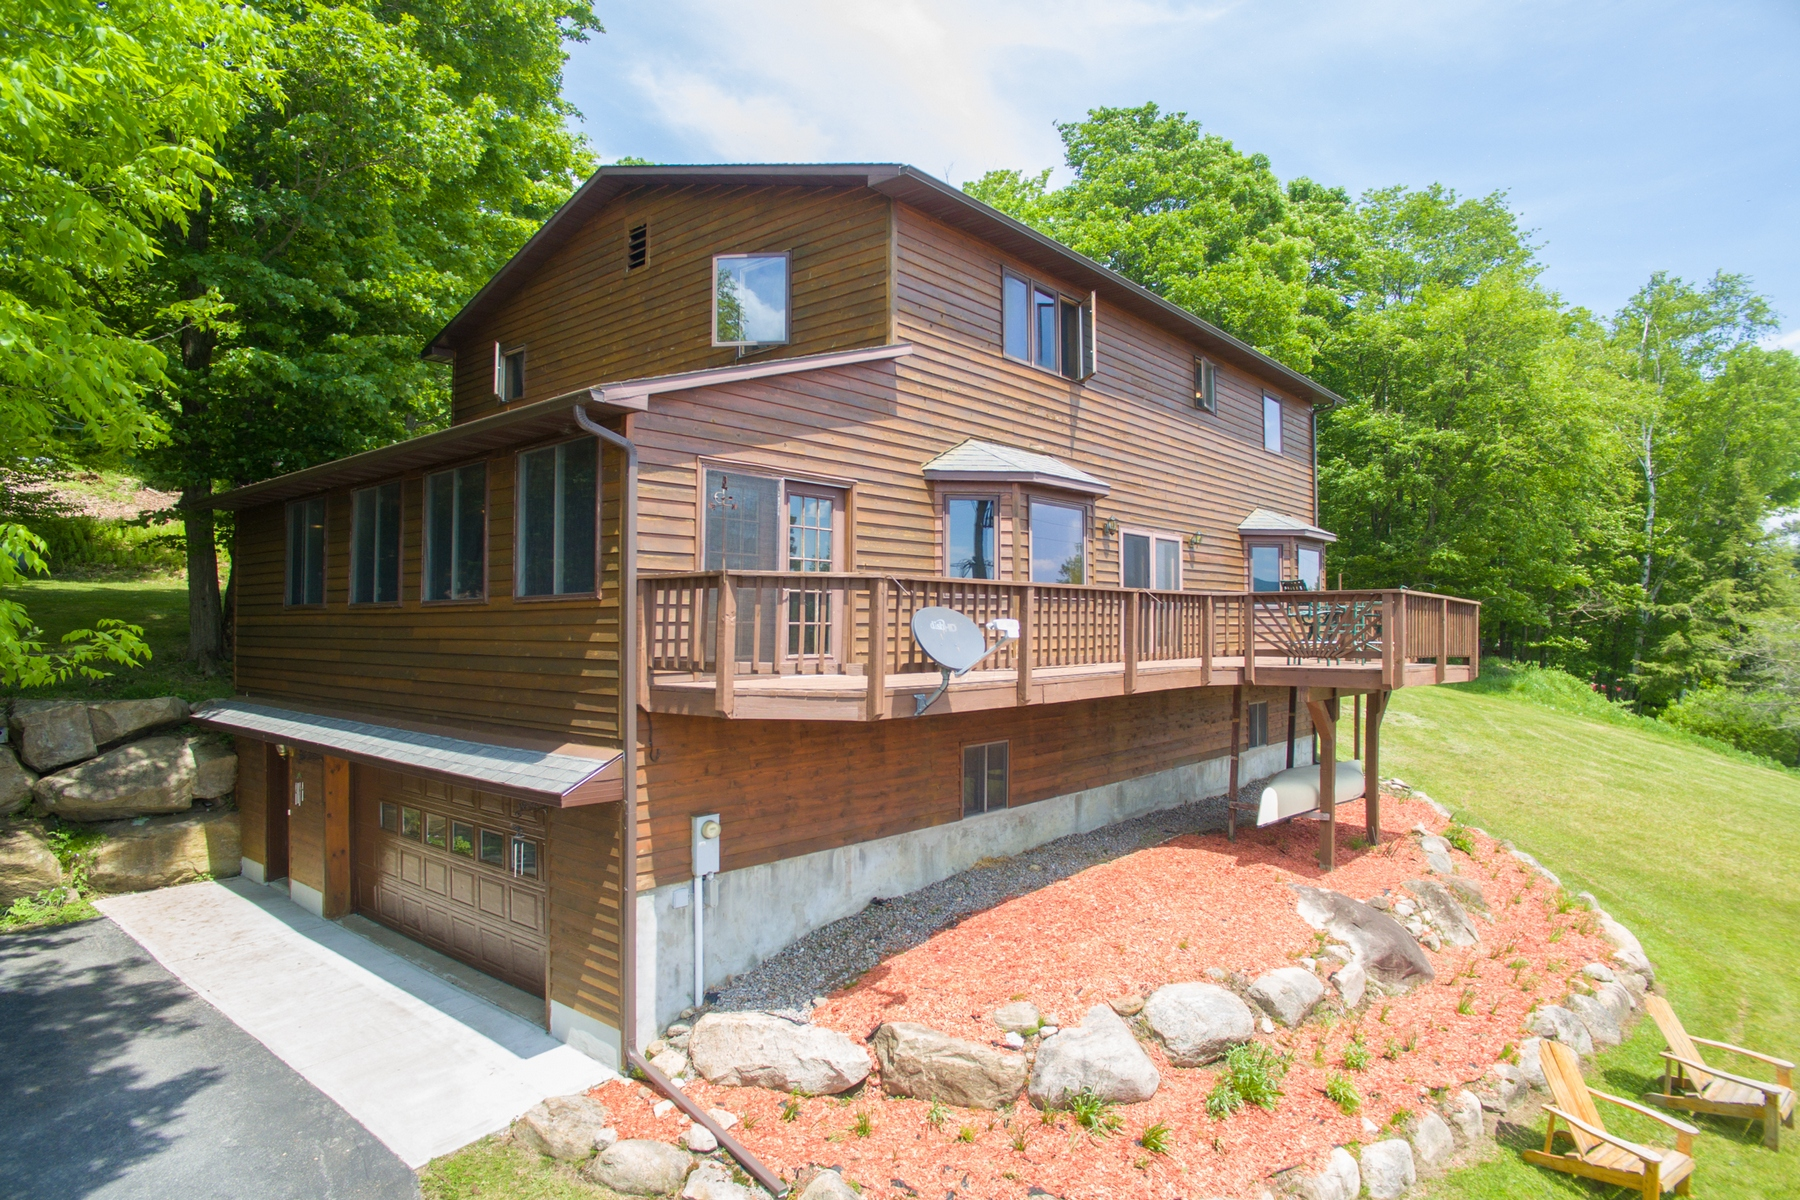 Single Family Home for Sale at Colonial Overlooking the Lake 573 Hollywood Hills Old Forge, New York 13420 United States